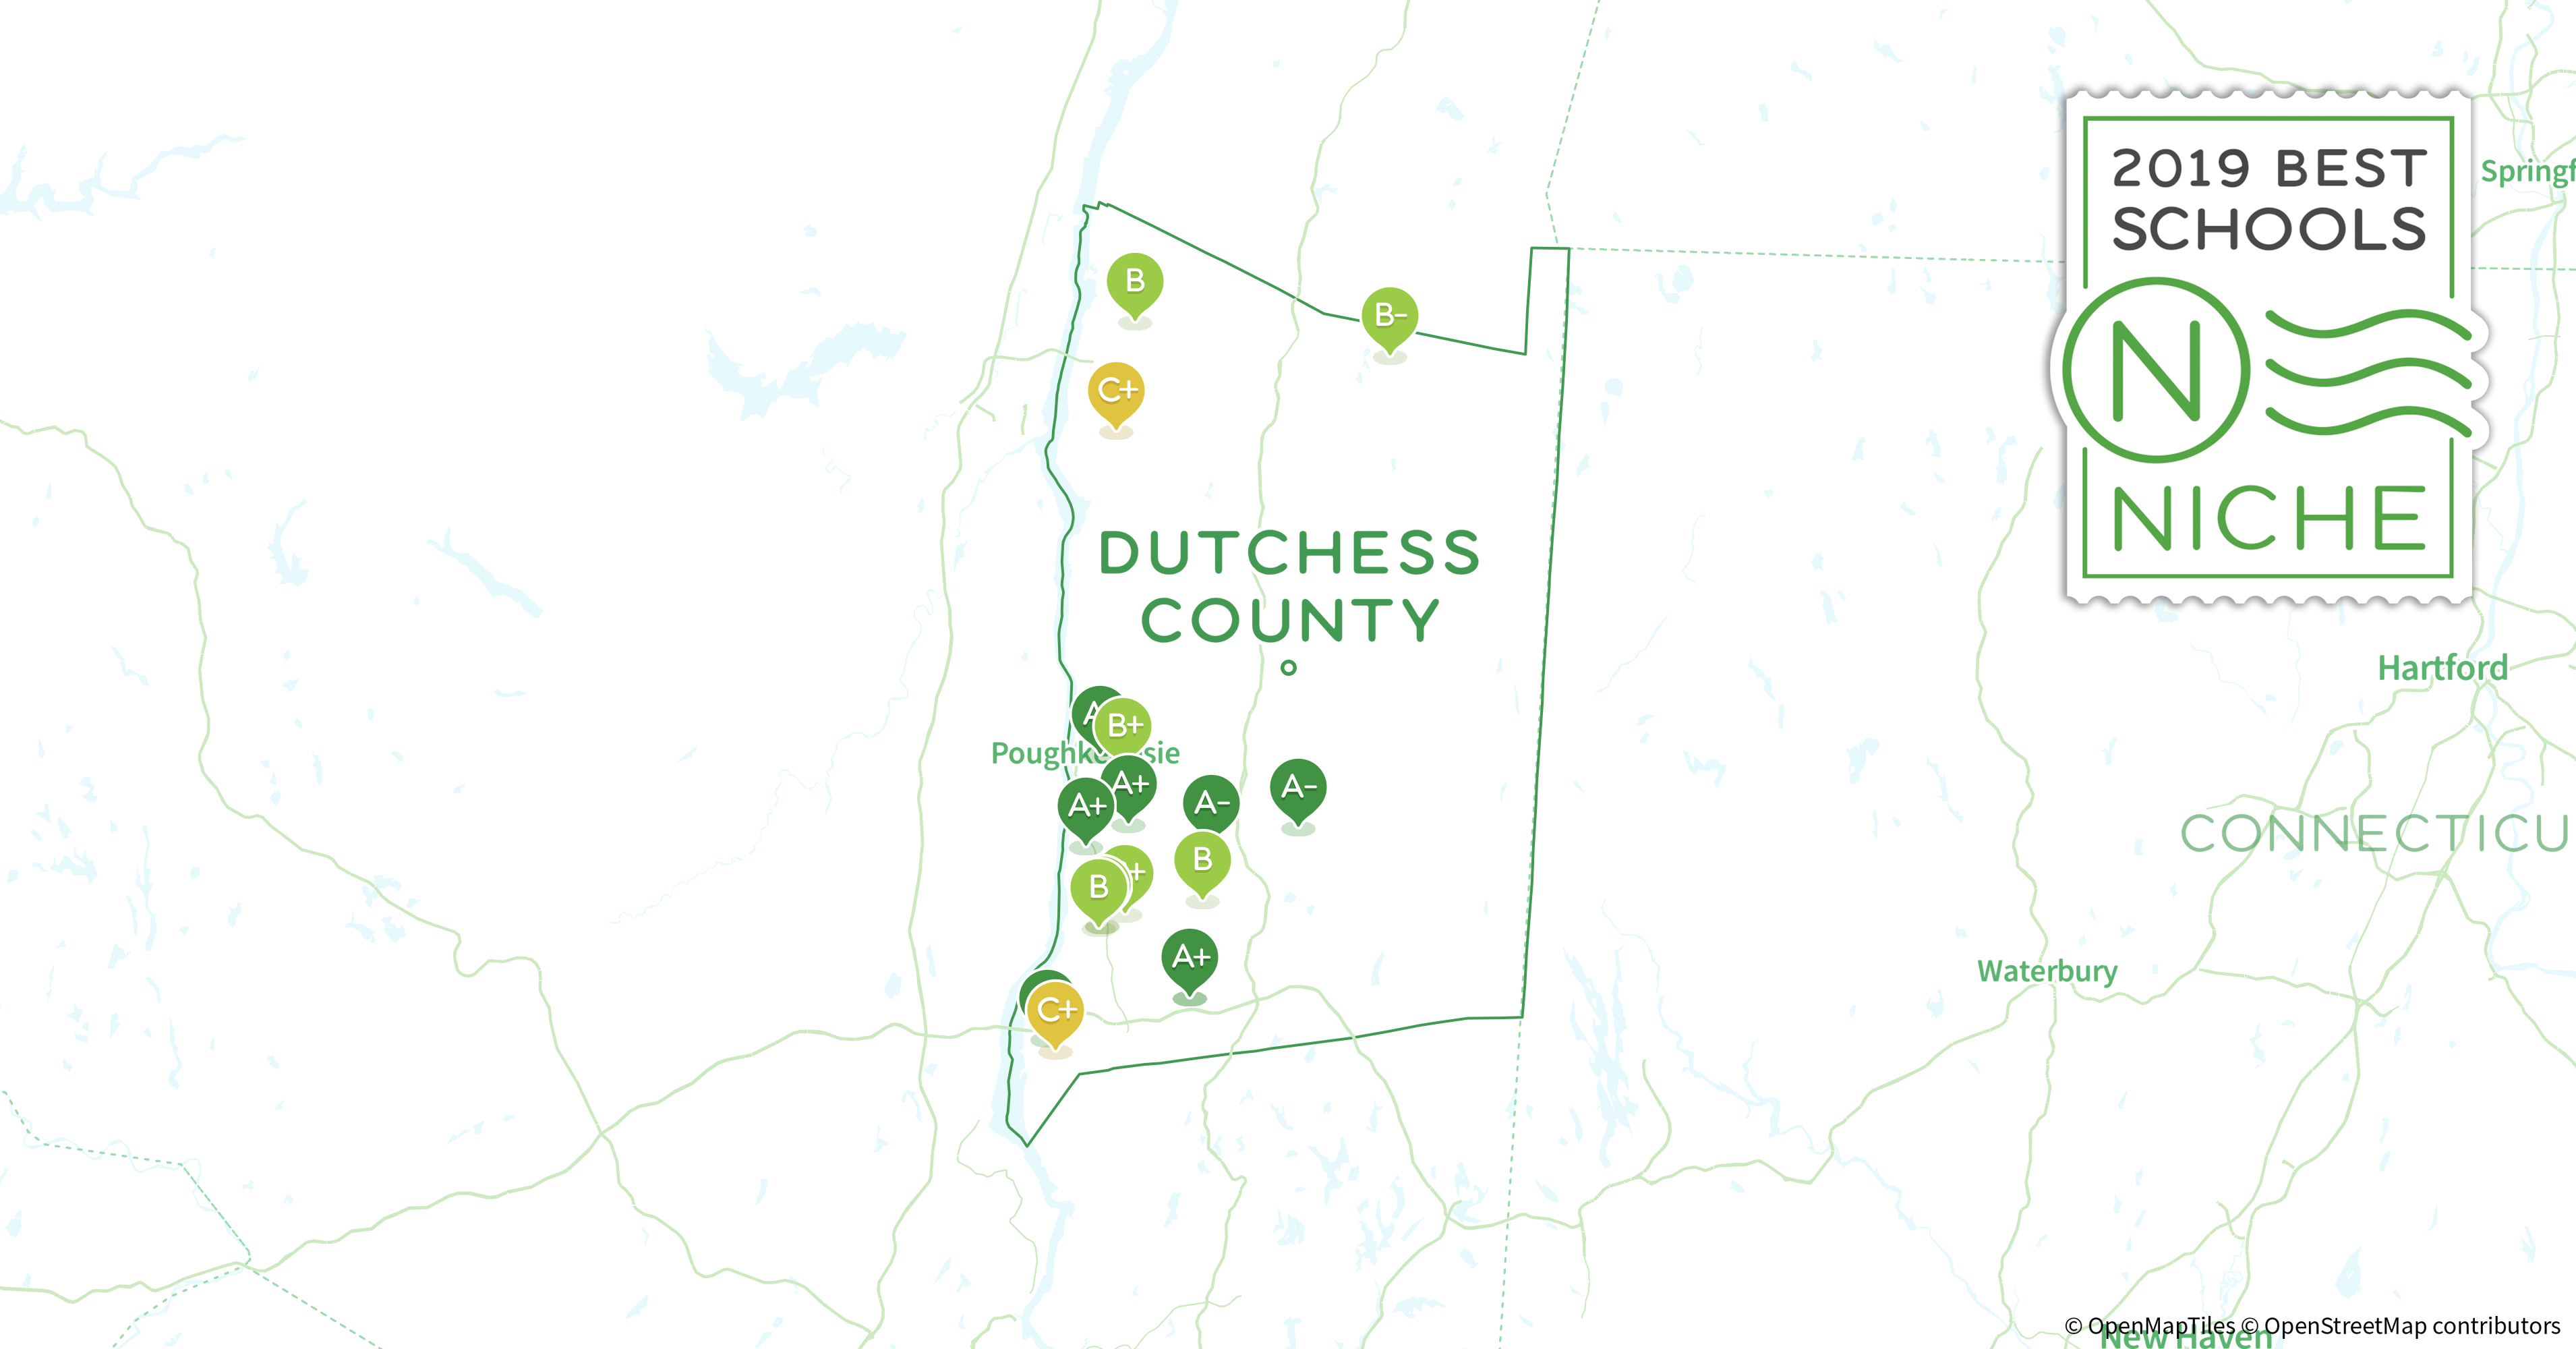 School Districts in Dutchess County, NY - Niche